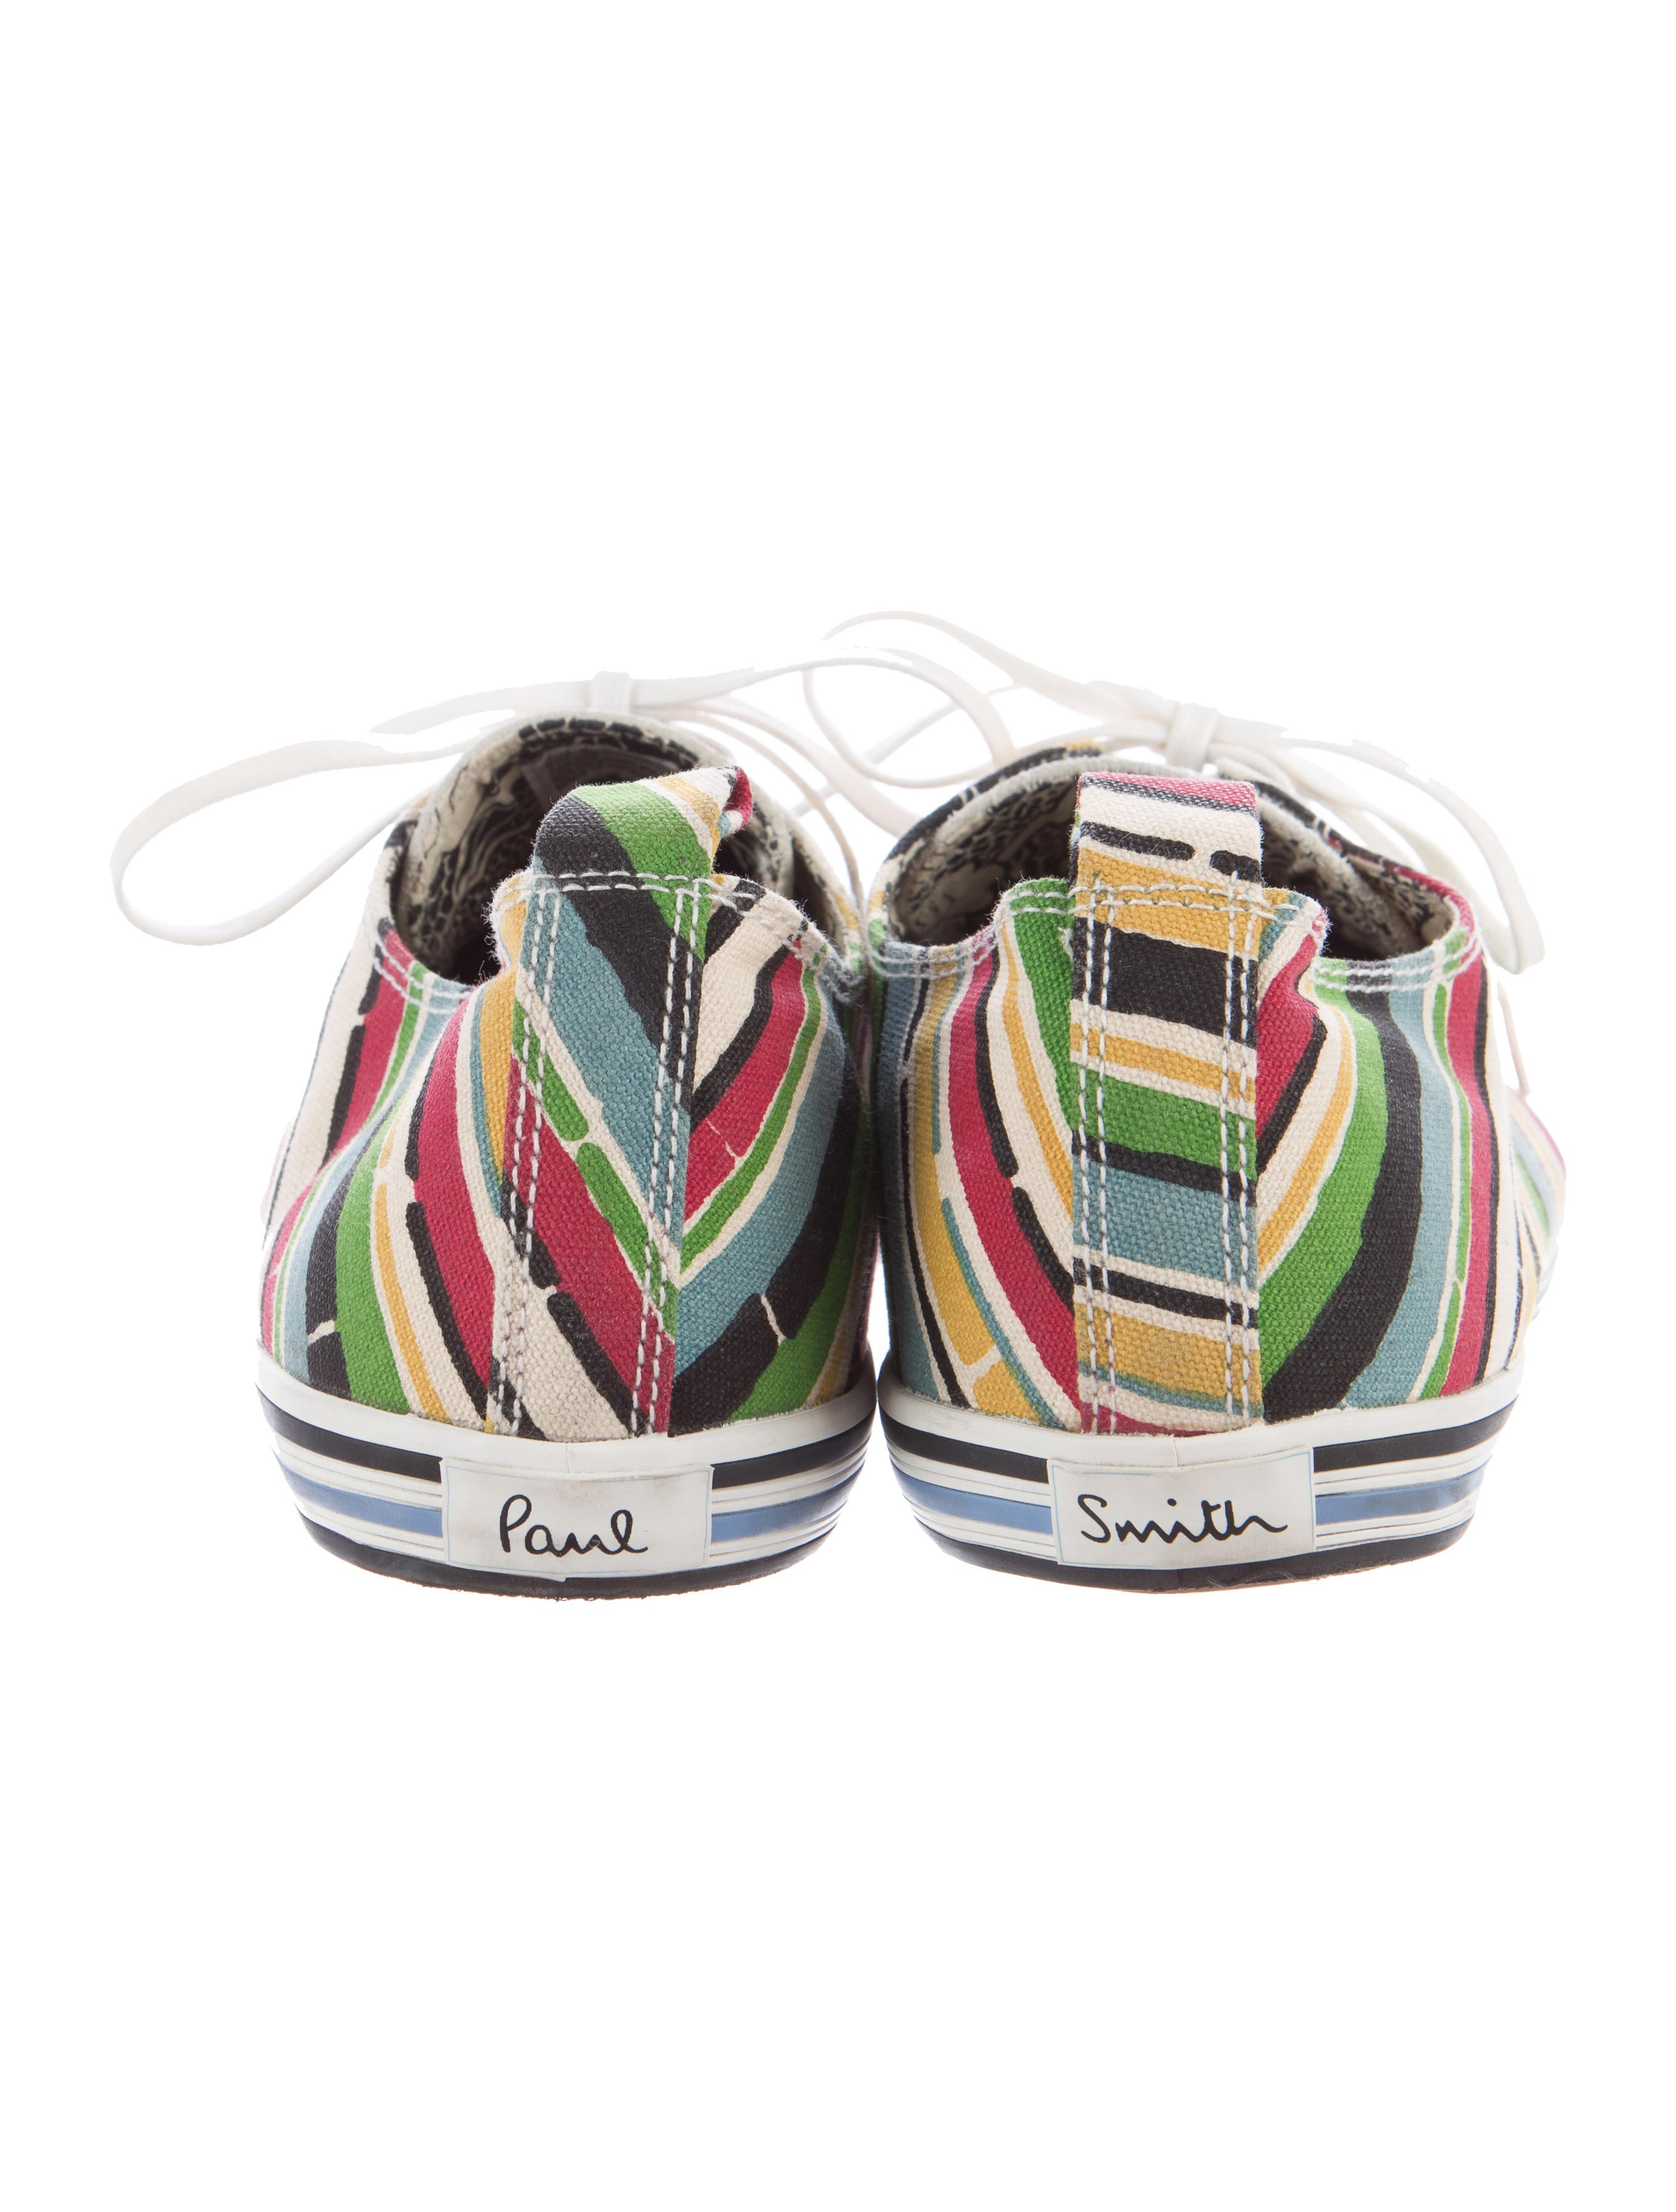 paul smith canvas suede low top sneakers shoes